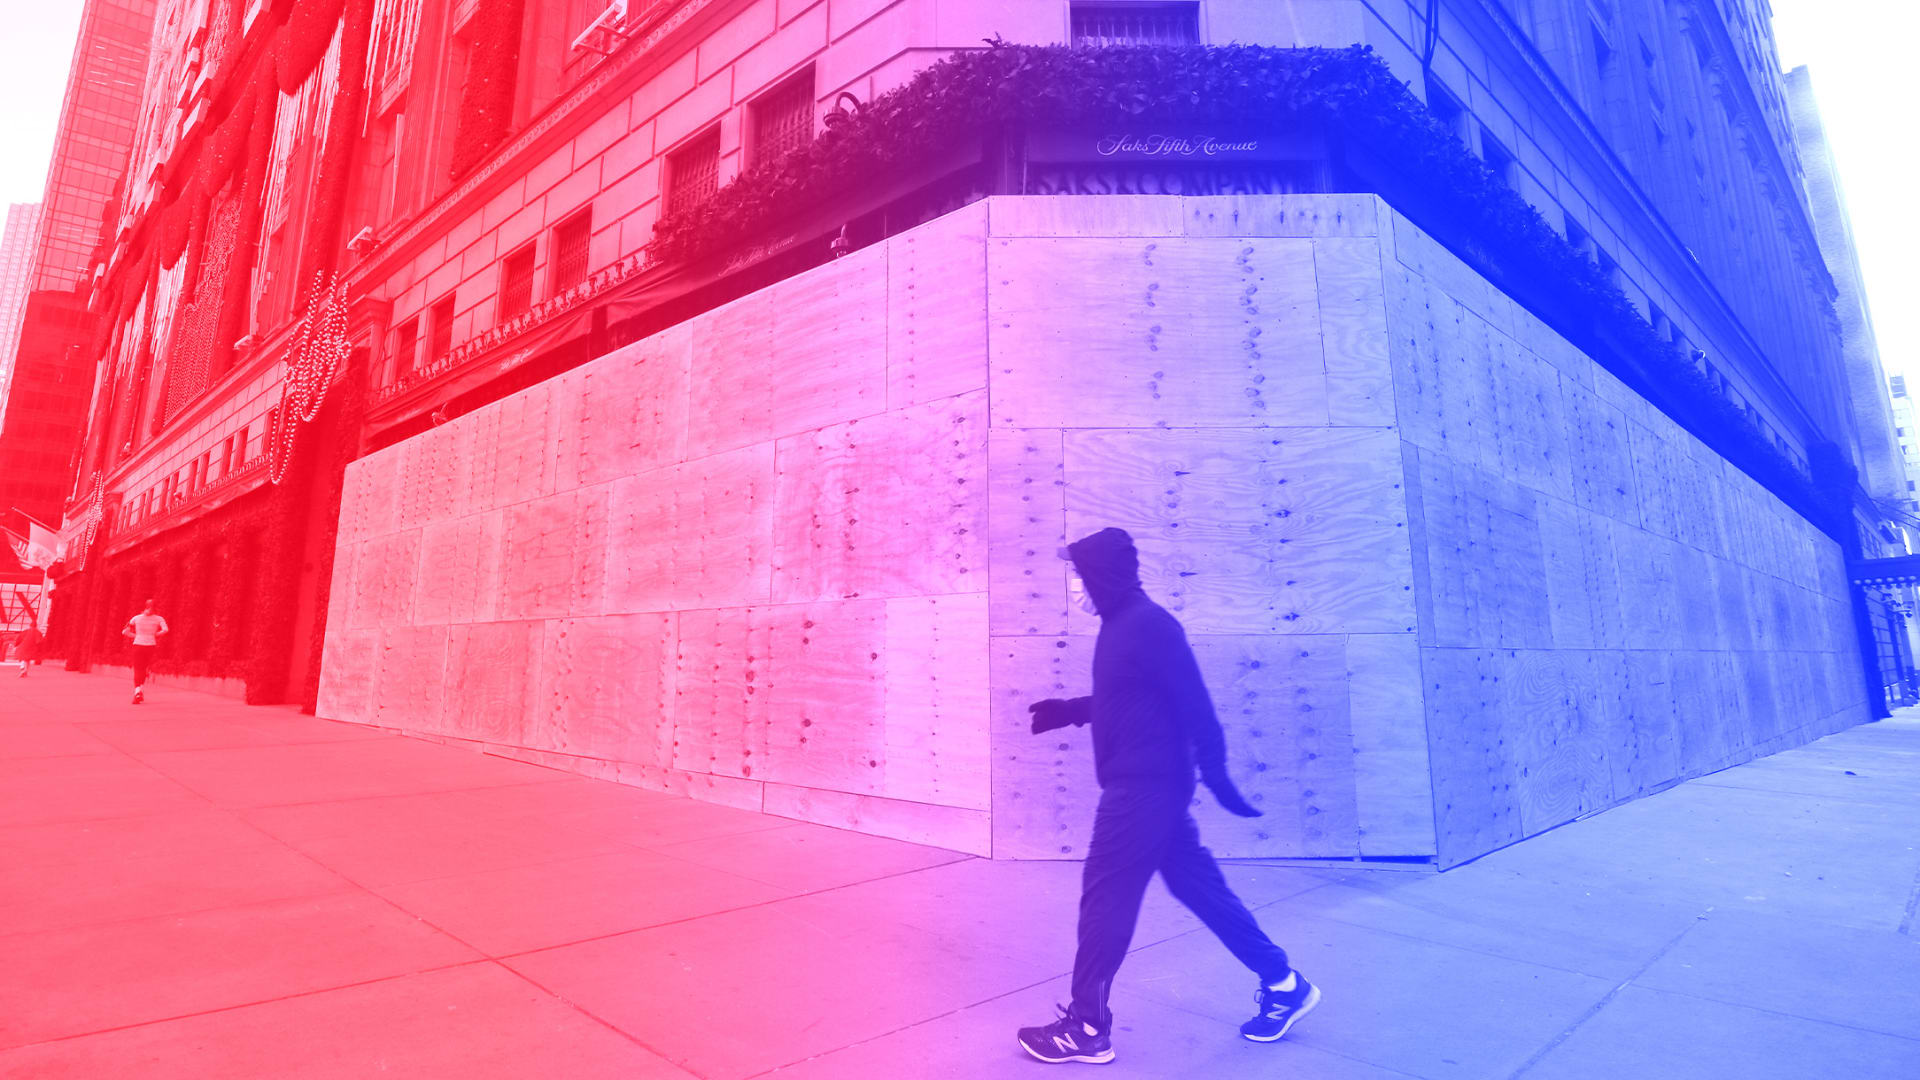 A person walks past a boarded-up entrance and windows of the Saks Fifth Avenue store on Fifth Avenue ahead of expected election day protests on October 31, 2020 in New York City.